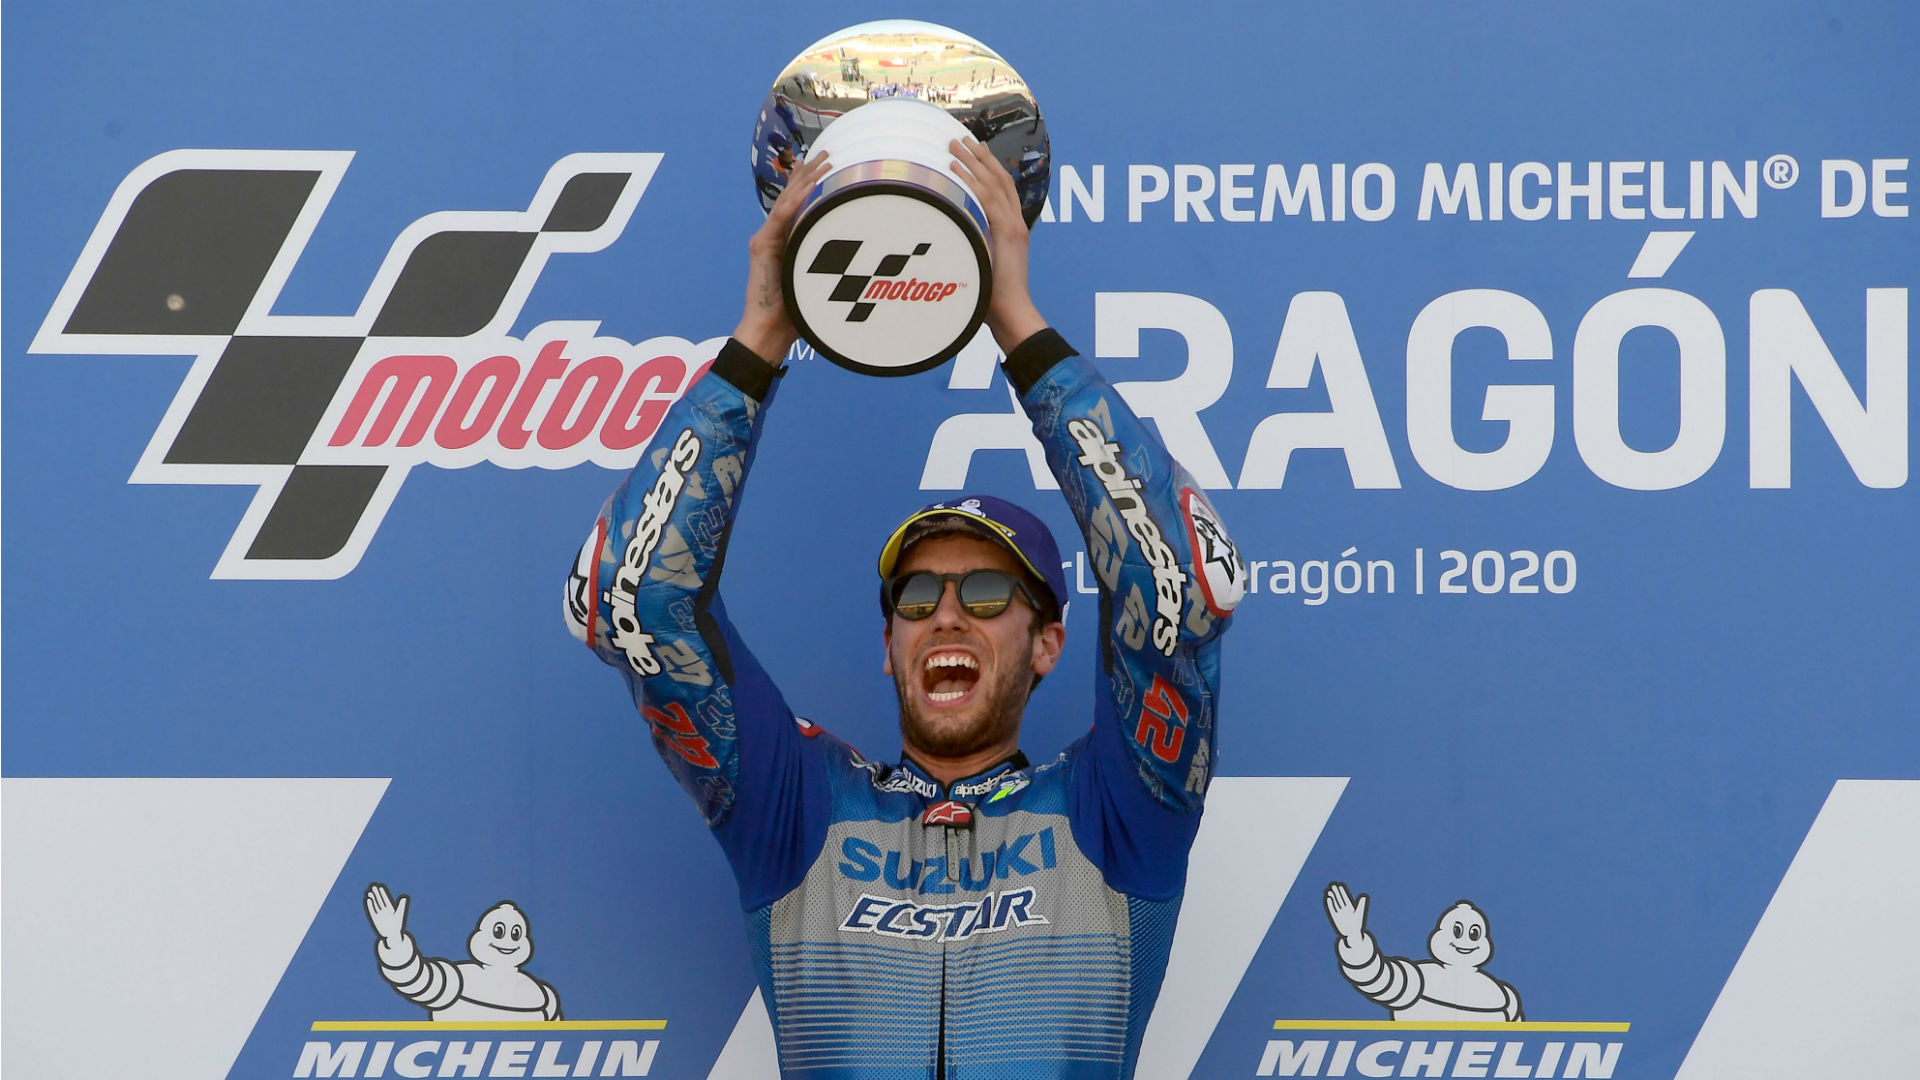 MotoGP 2020: Rins and Marquez revel in Aragon success as Mir rues bike issues